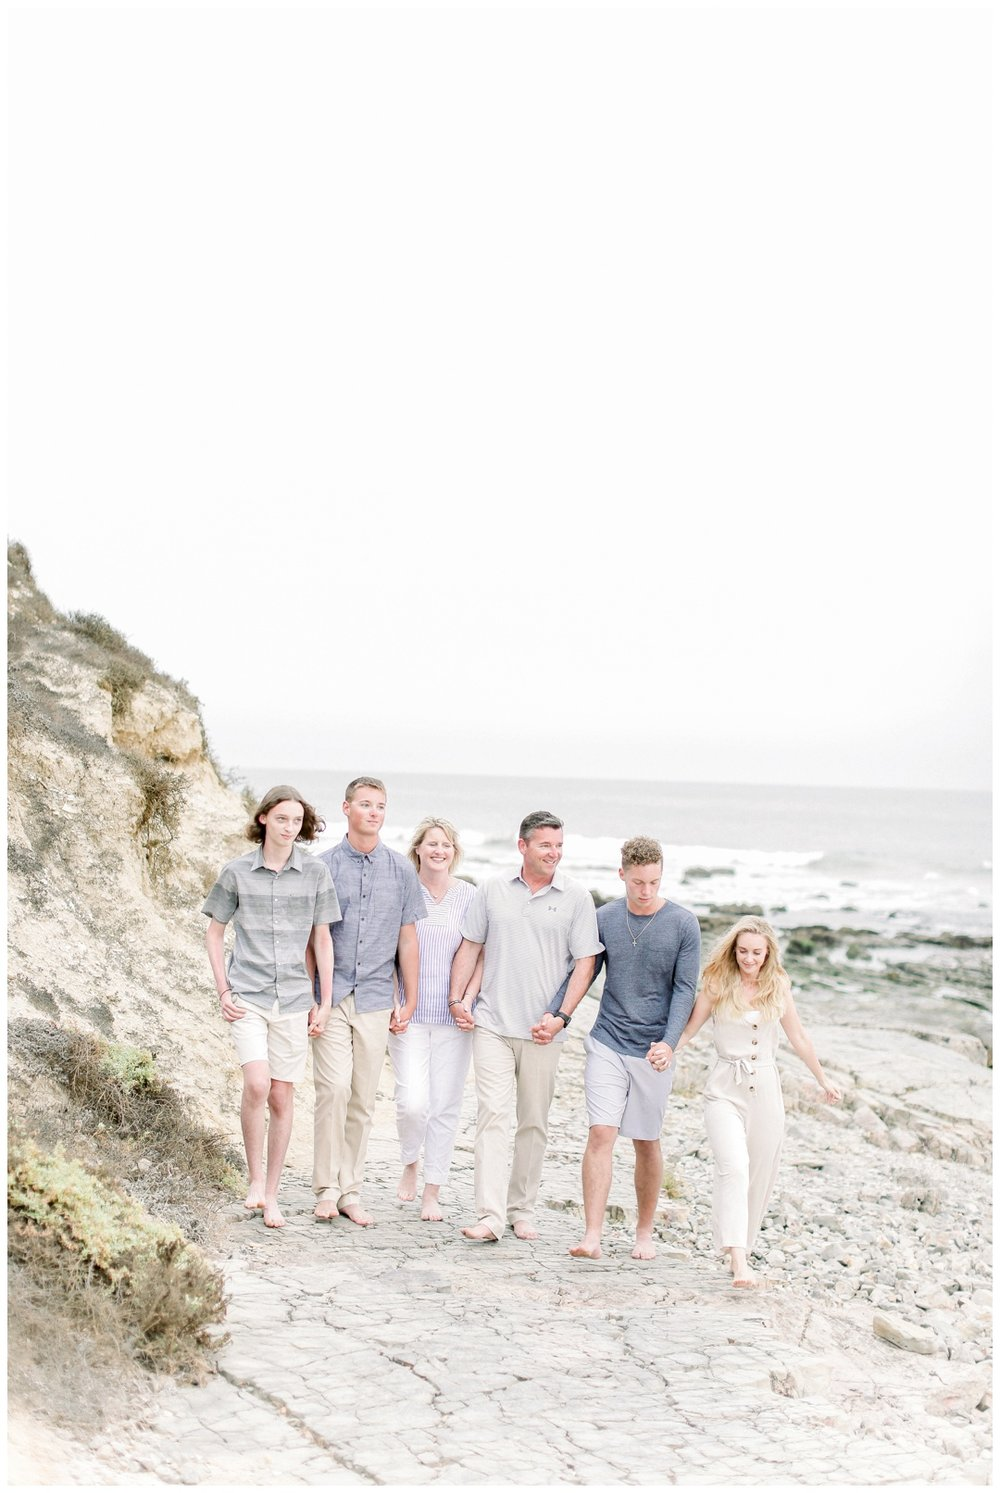 Newport_Beach_Family_Photographer_Orange_County_Family_Photography_Cori_Kleckner_Photography_Orange_County_Family_Photographer_Beach_Family_Session__1225.jpg